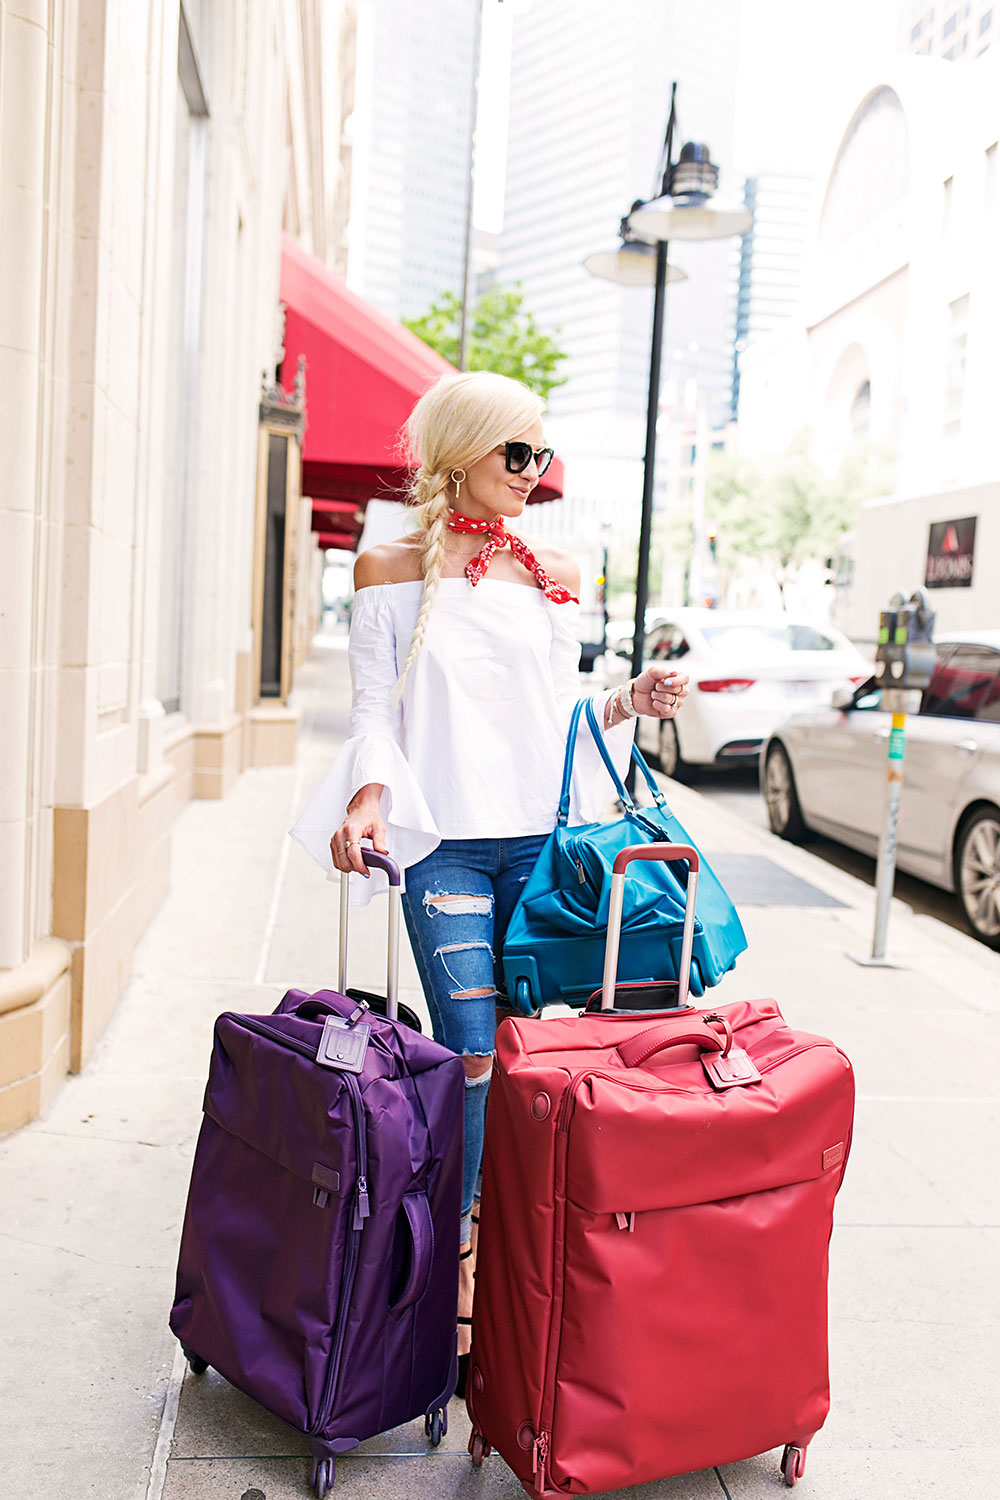 My Top 3 Packing Tips for Women